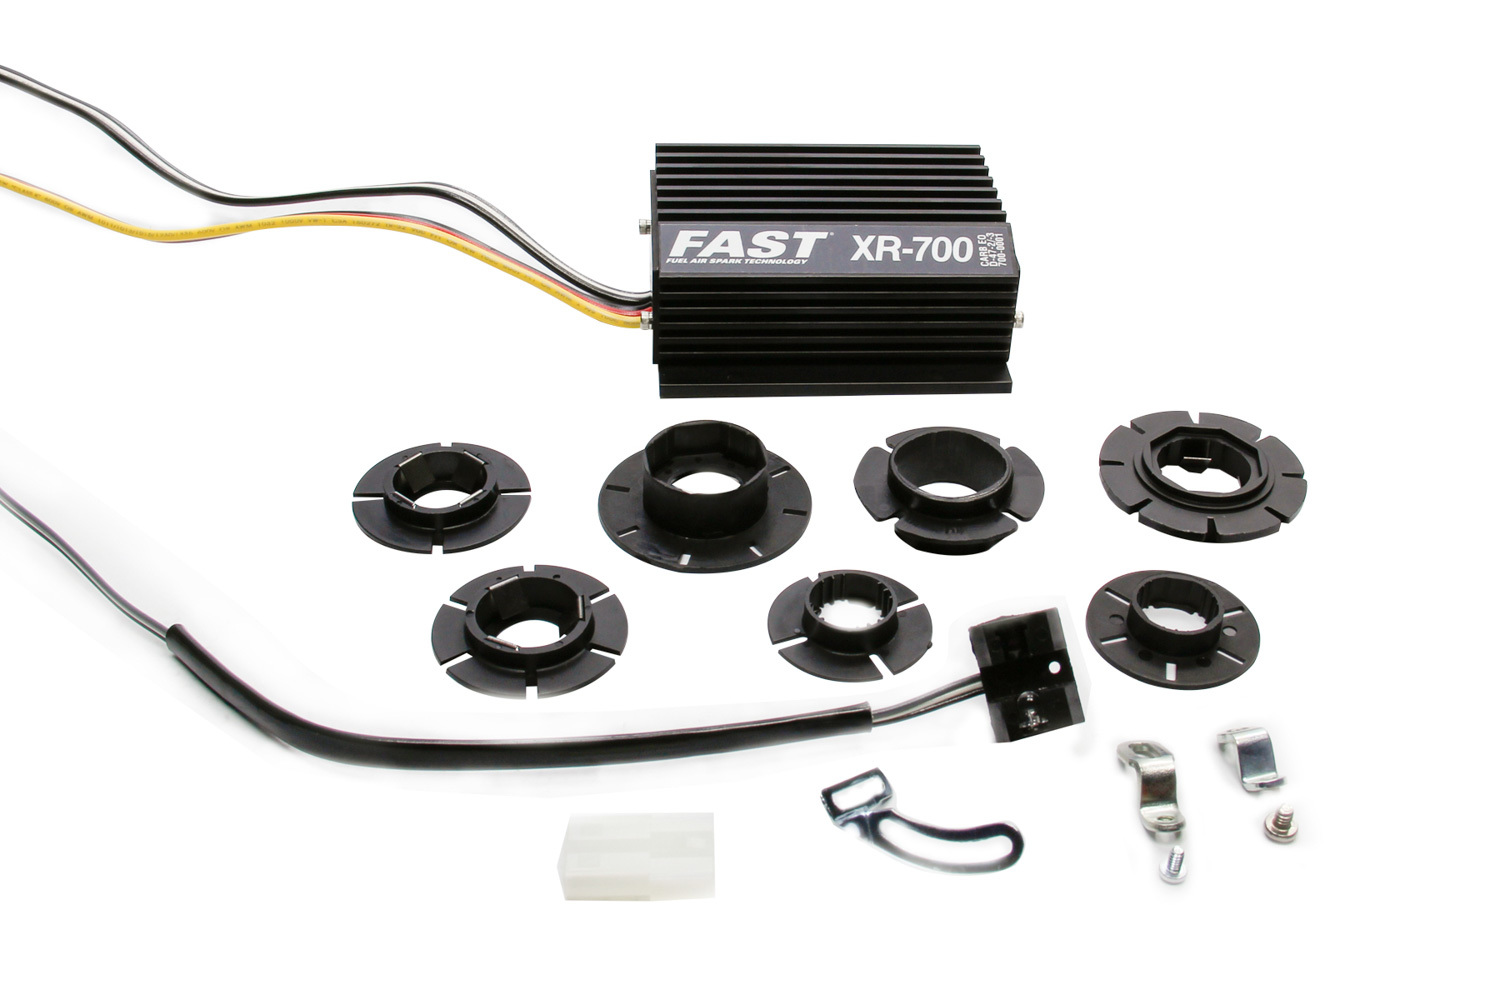 FAST 700-0231 Ignition Conversion Kit, XR700, Points to Electronic, Optical Trigger, Import / Universal 4 / 6 / 8-Cylinder, Kit